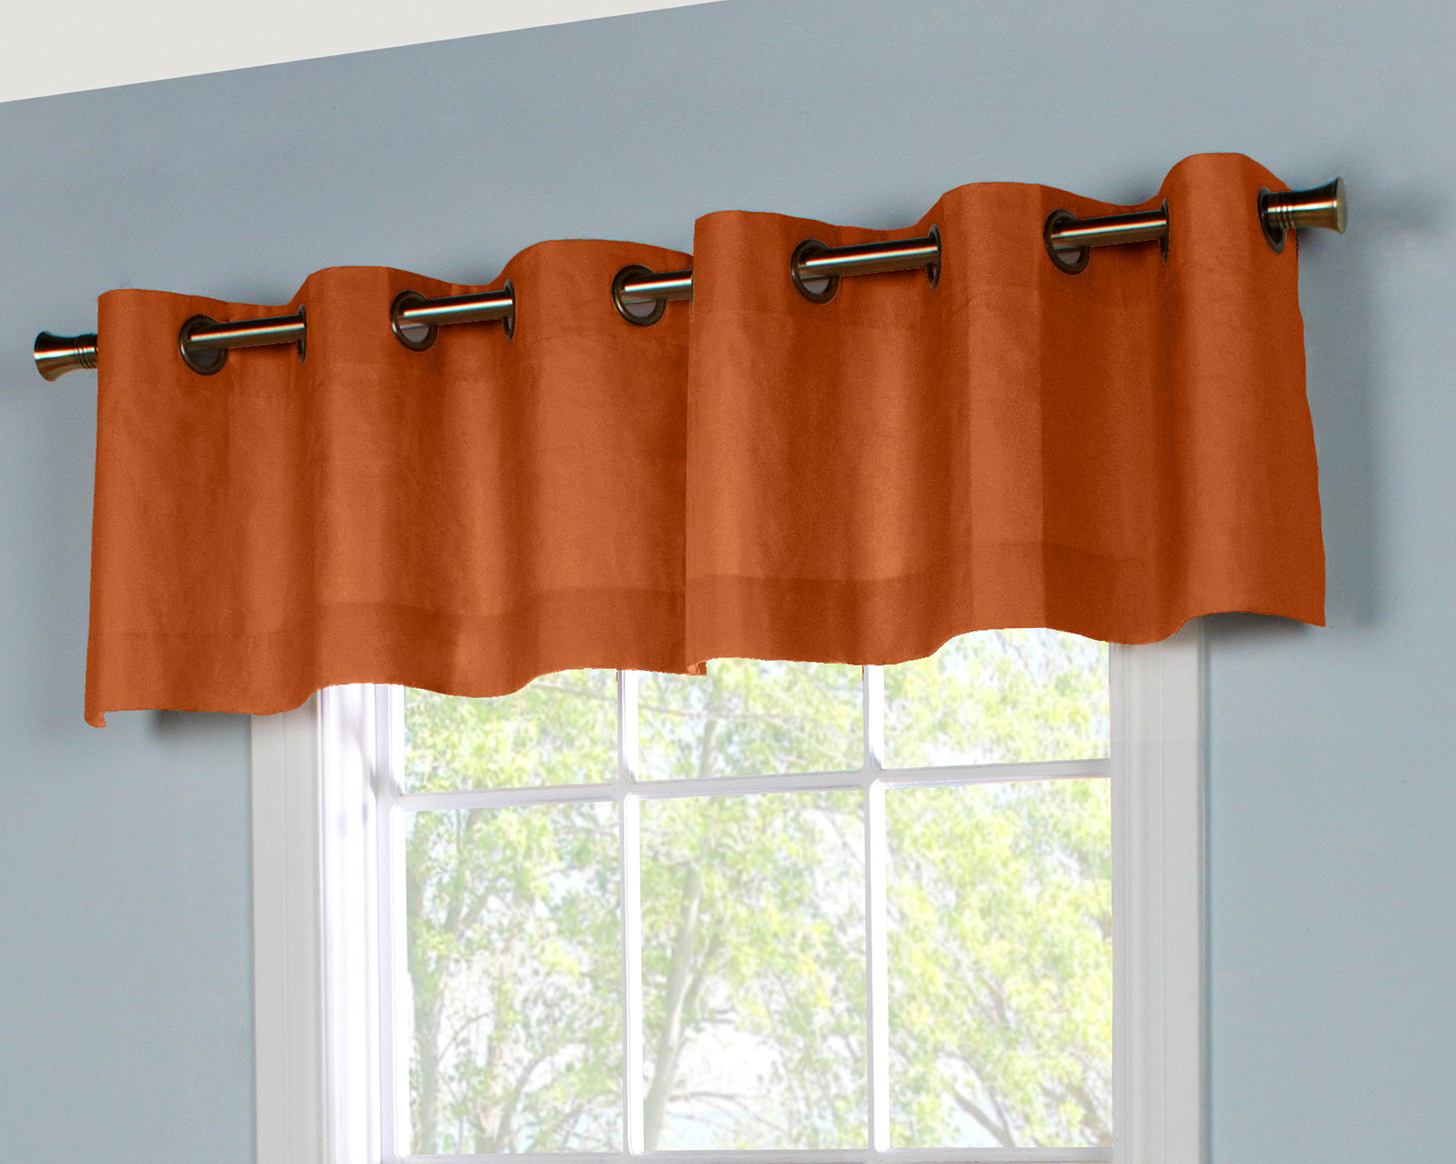 Blackout Curtain Liners Grommet